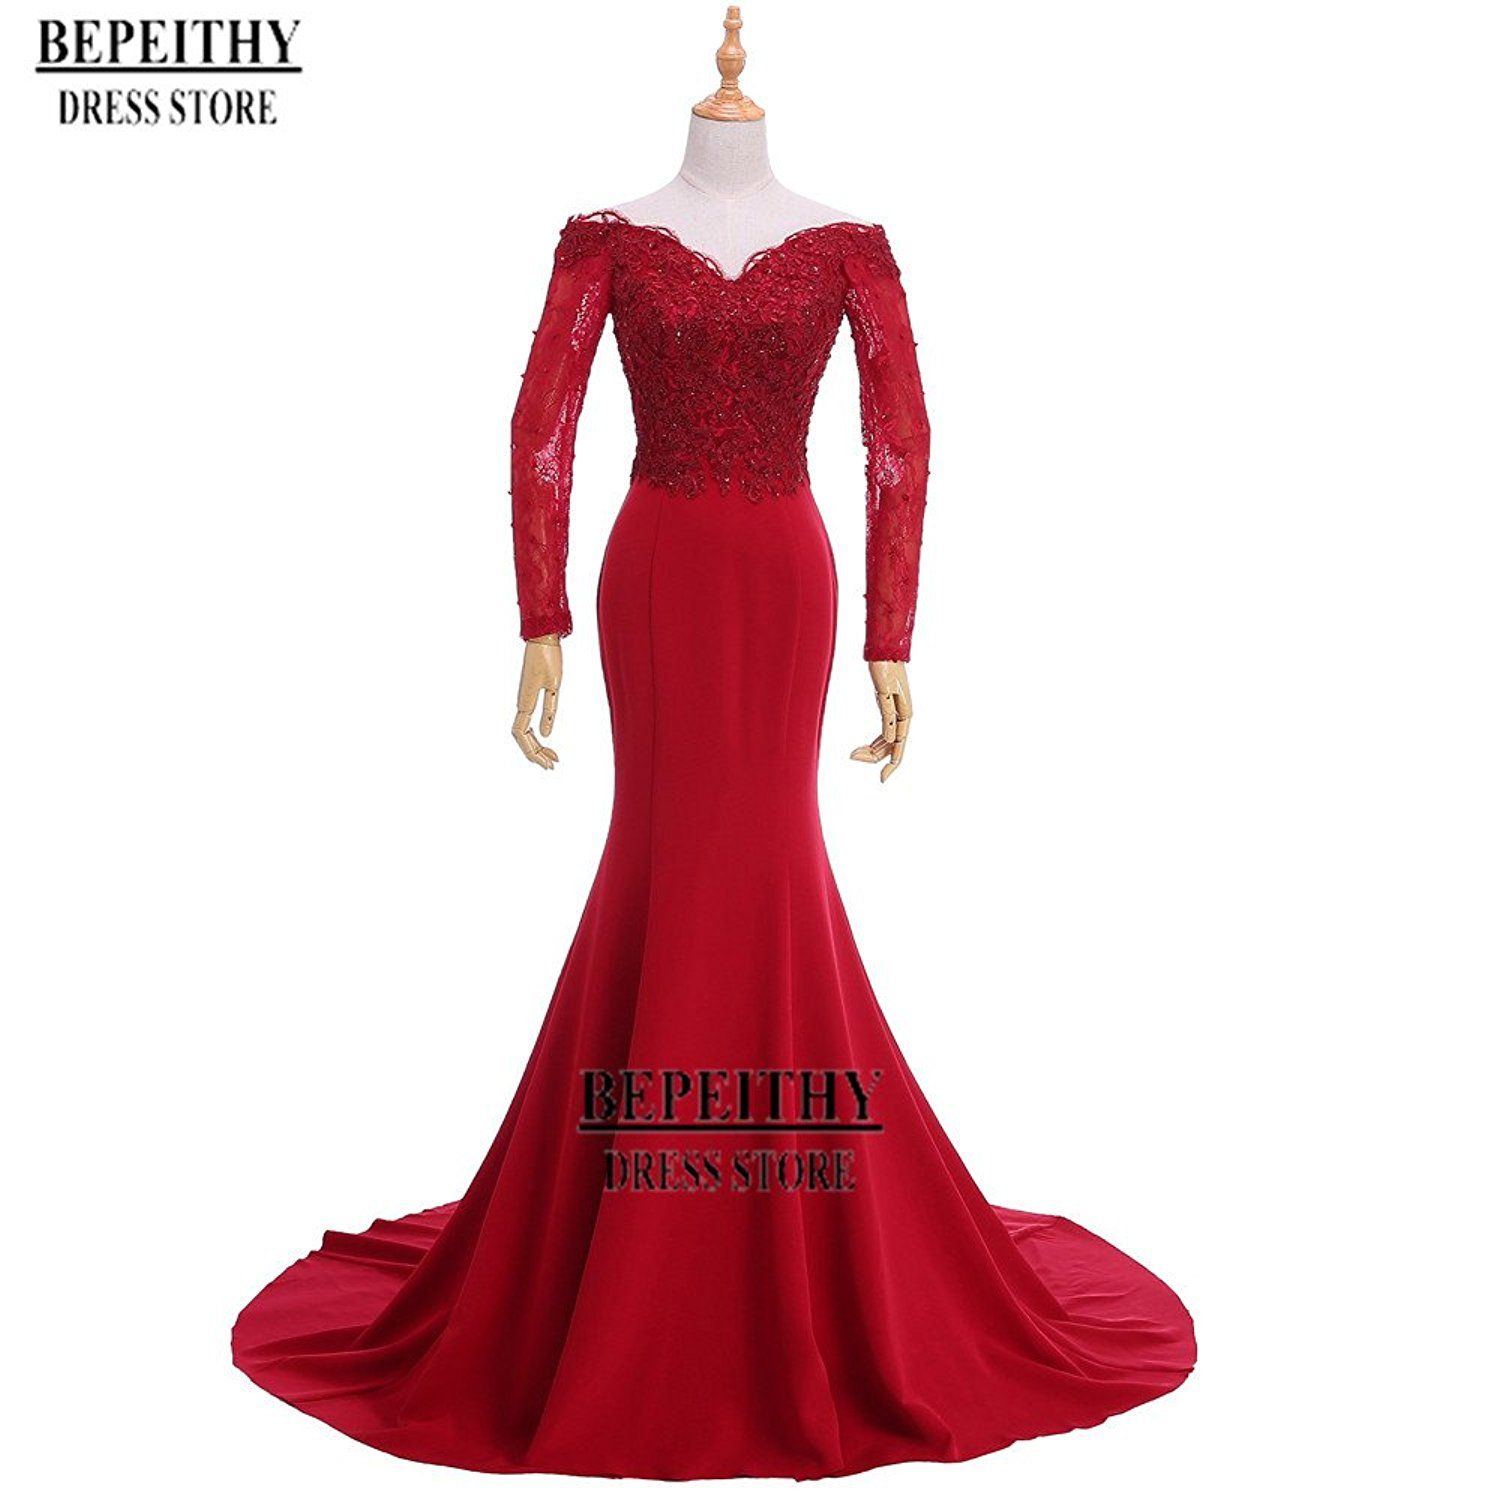 Bepeithy mermaid long evening dress sleeves prom gown click on